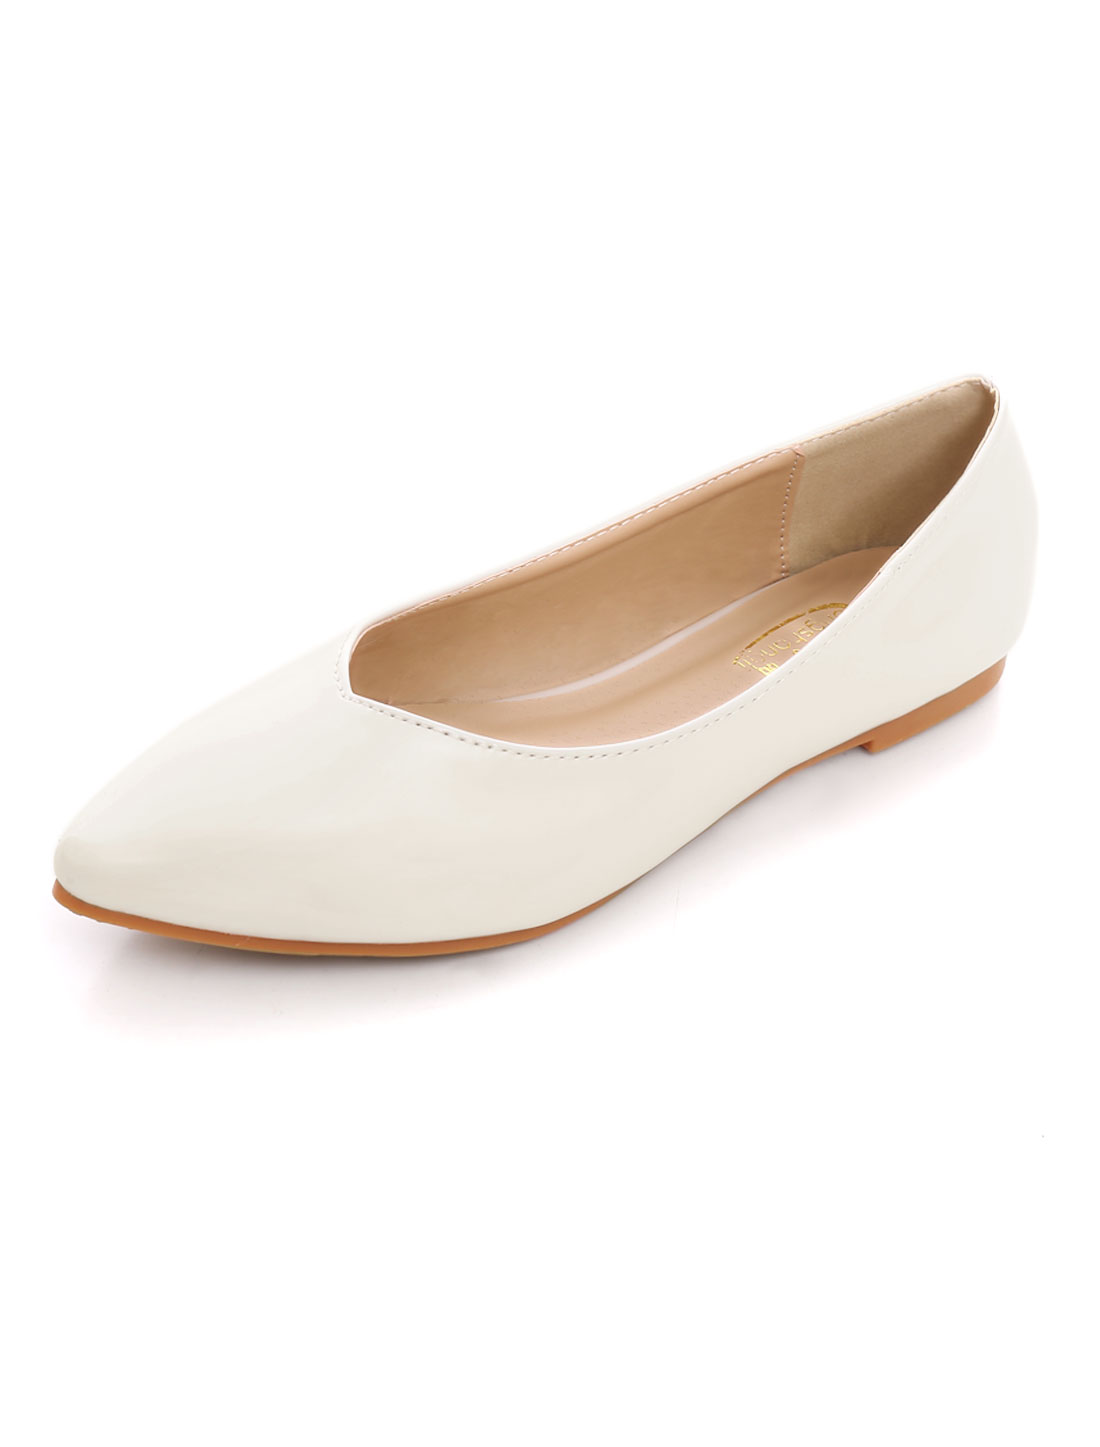 Ladies V-Cut Vamp Patent-Leather Pointed Ballet Flats White US 8.5